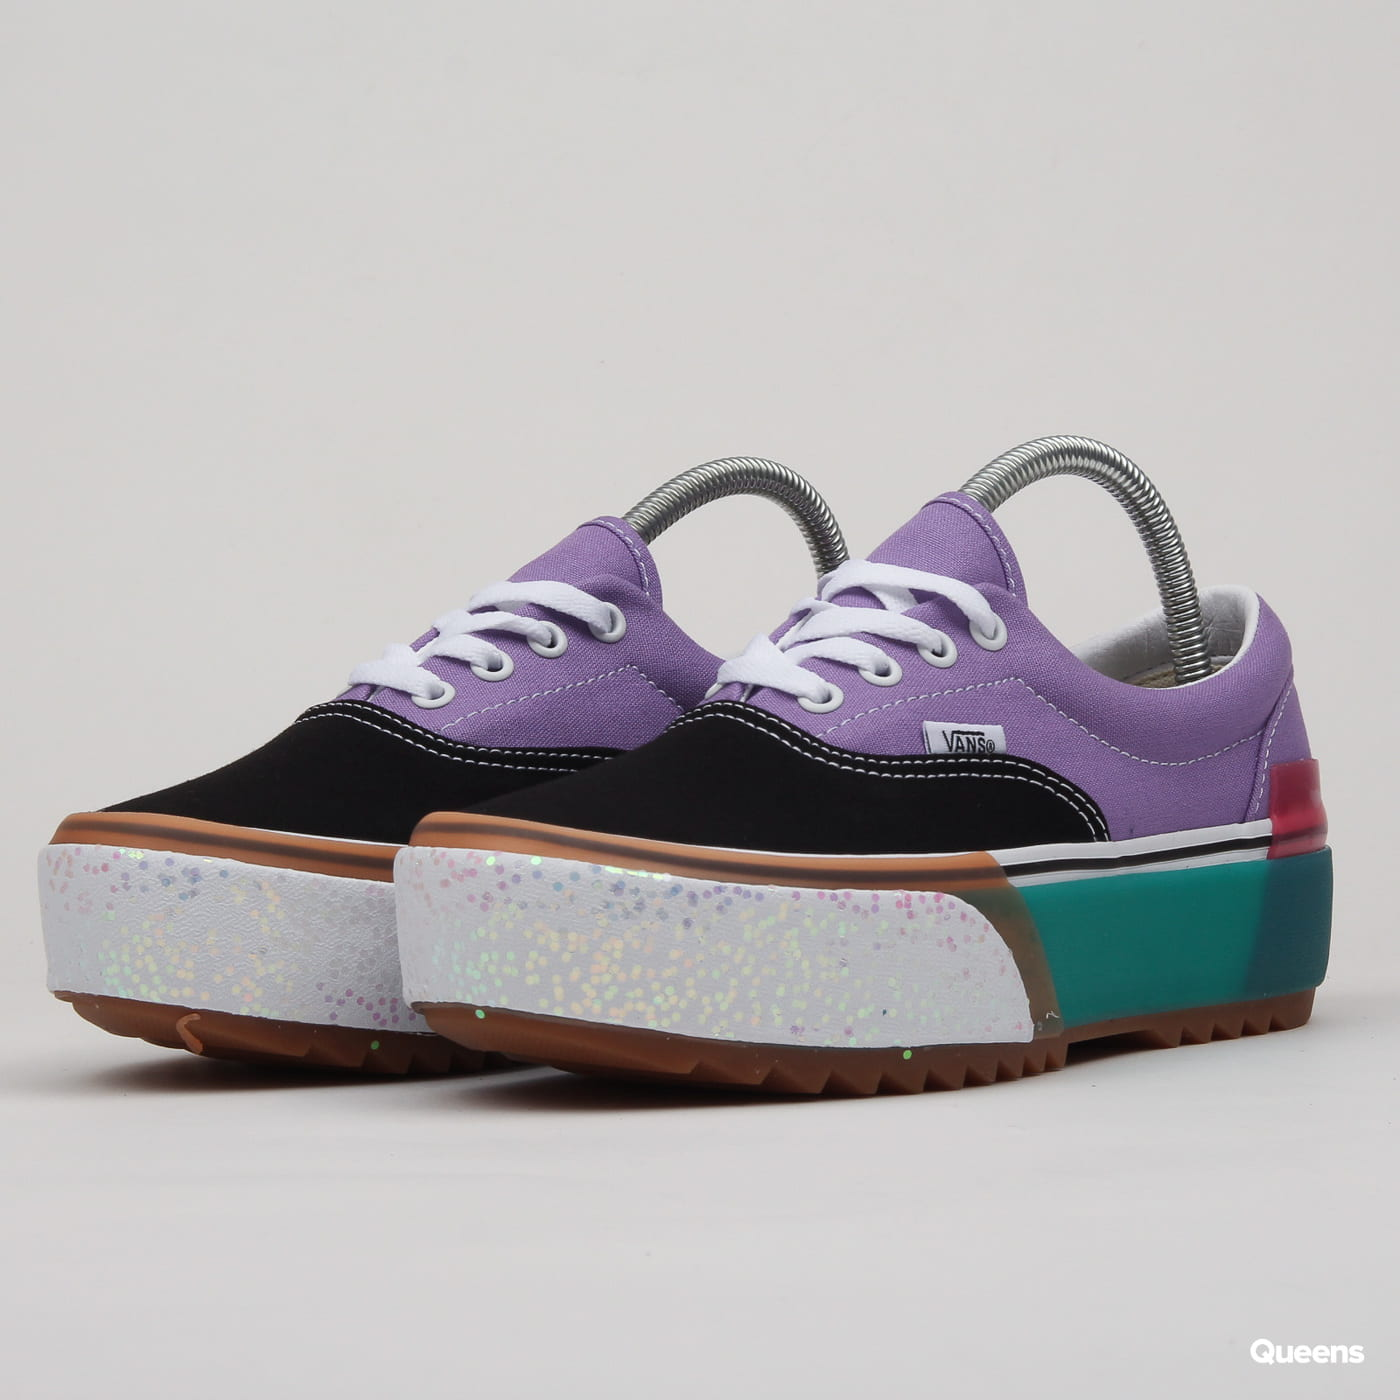 abacdd990 Vans Era Stacked (VN0A4BTOVYF1) – Queens 💚